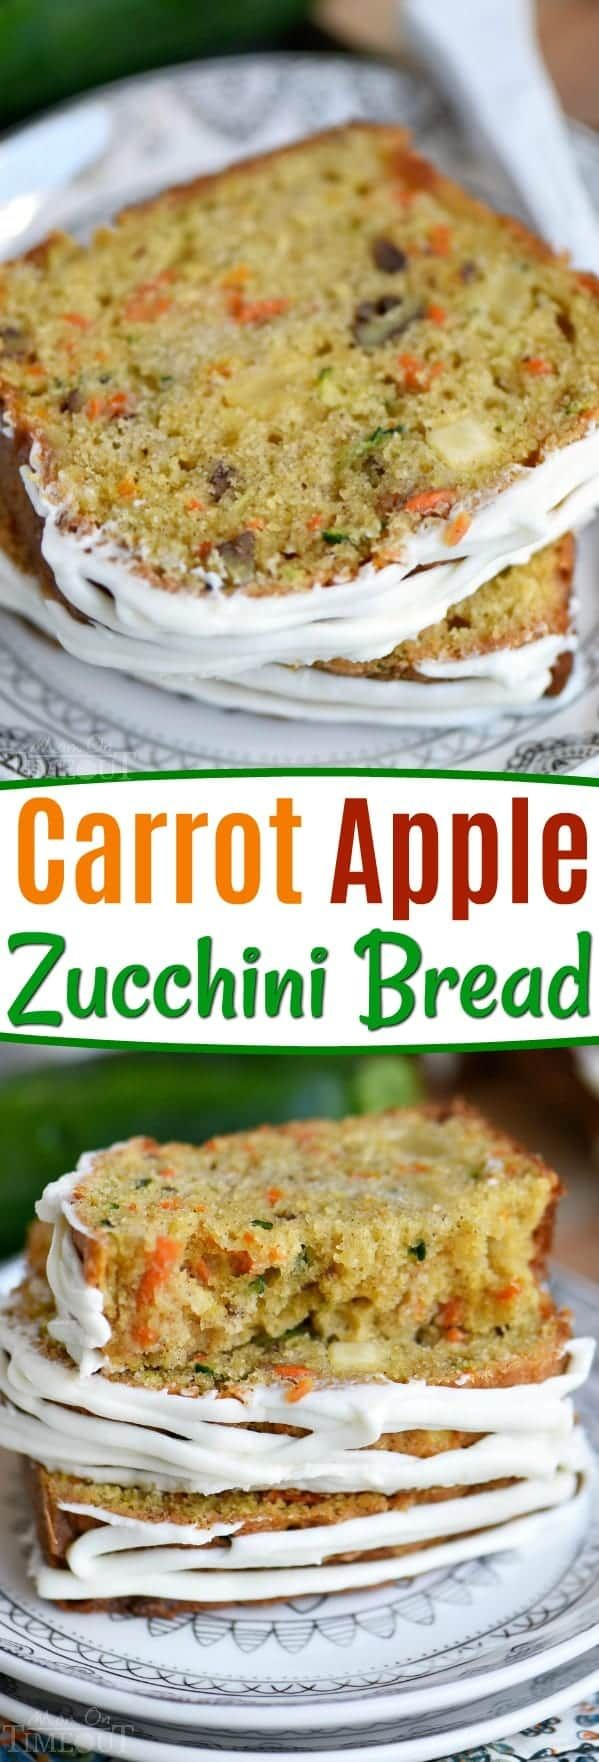 ThisCarrot Apple Zucchini Breadrecipe is incredibly moist and flavorful! Vibrant colors from the carrot, apple, and zucchini makes this quick bread irresisitble! Sure to be a new favorite! // Mom On Timeout